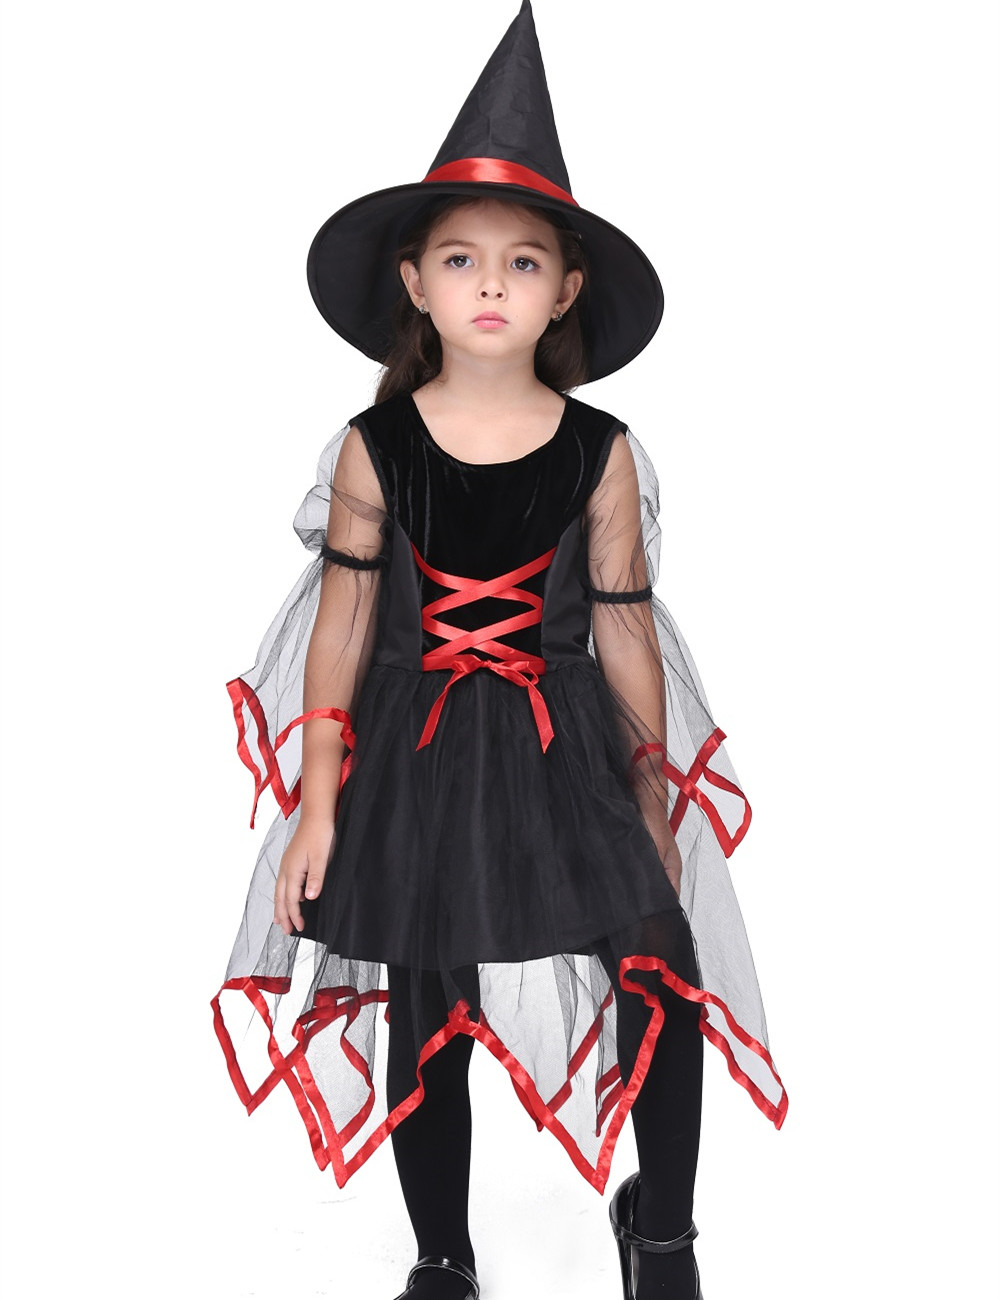 Witch Dress Costume Halloween Costume For Kids Stage & Dance Wear Toddler Mesh Short Skirt Party Cosplay